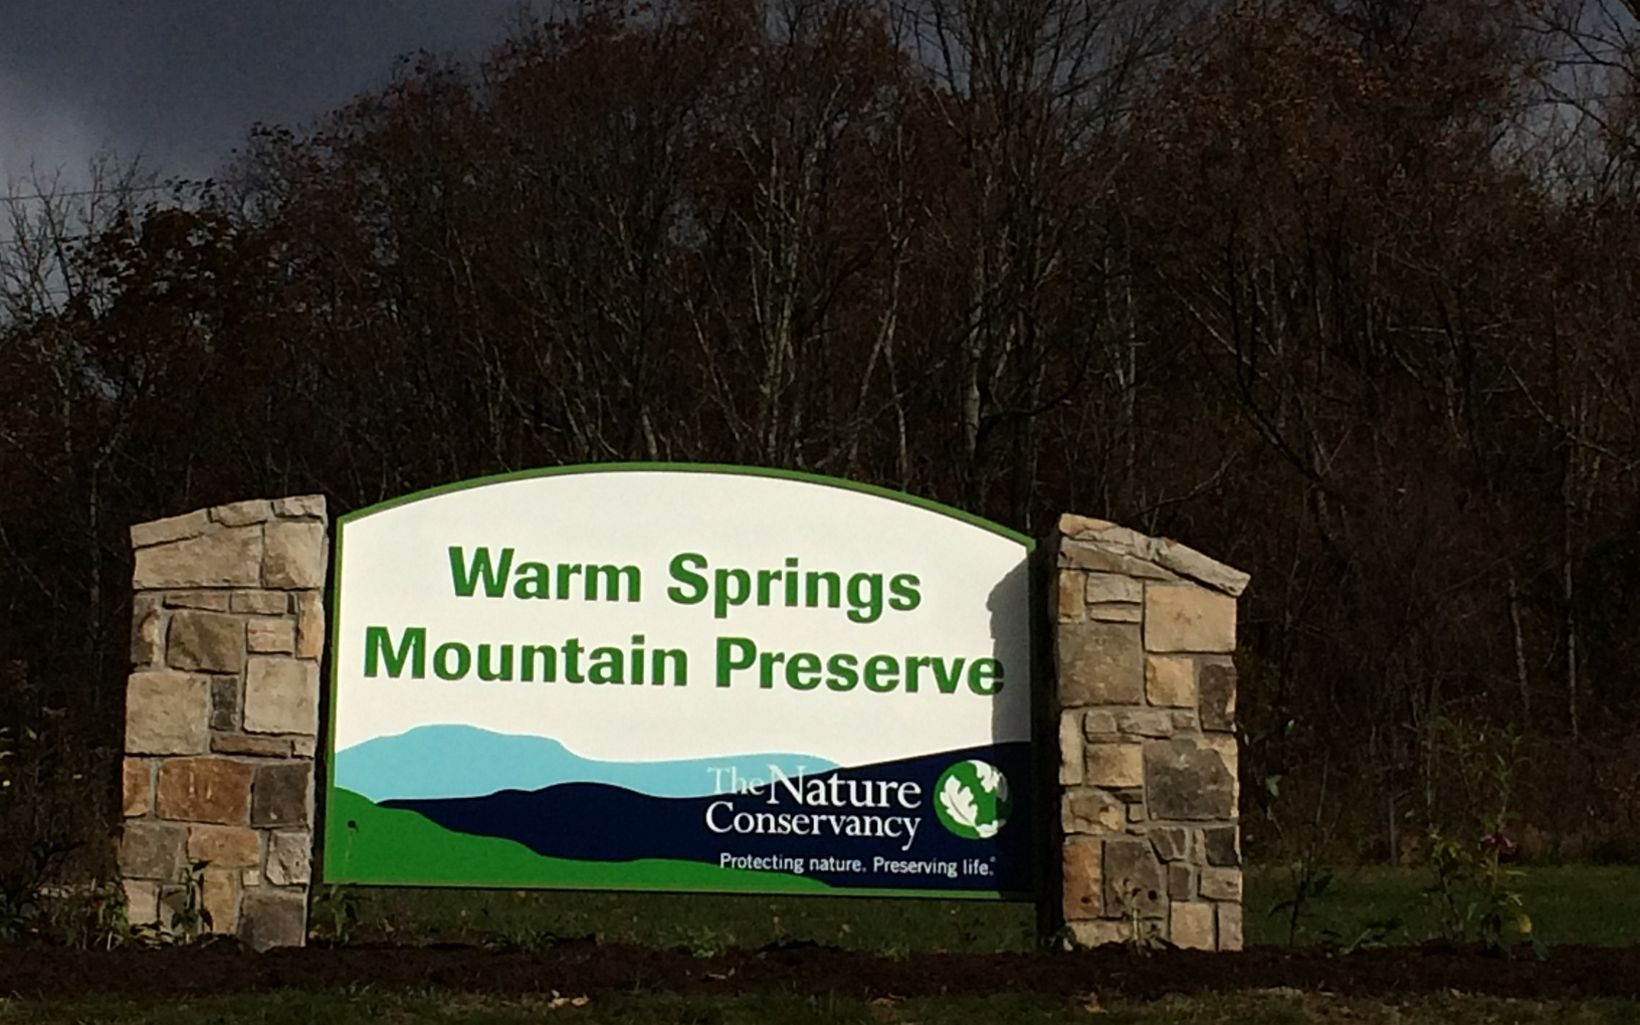 A large sign held up by two stone pillars welcomes visitors to Warm Springs Mountain Preserve.